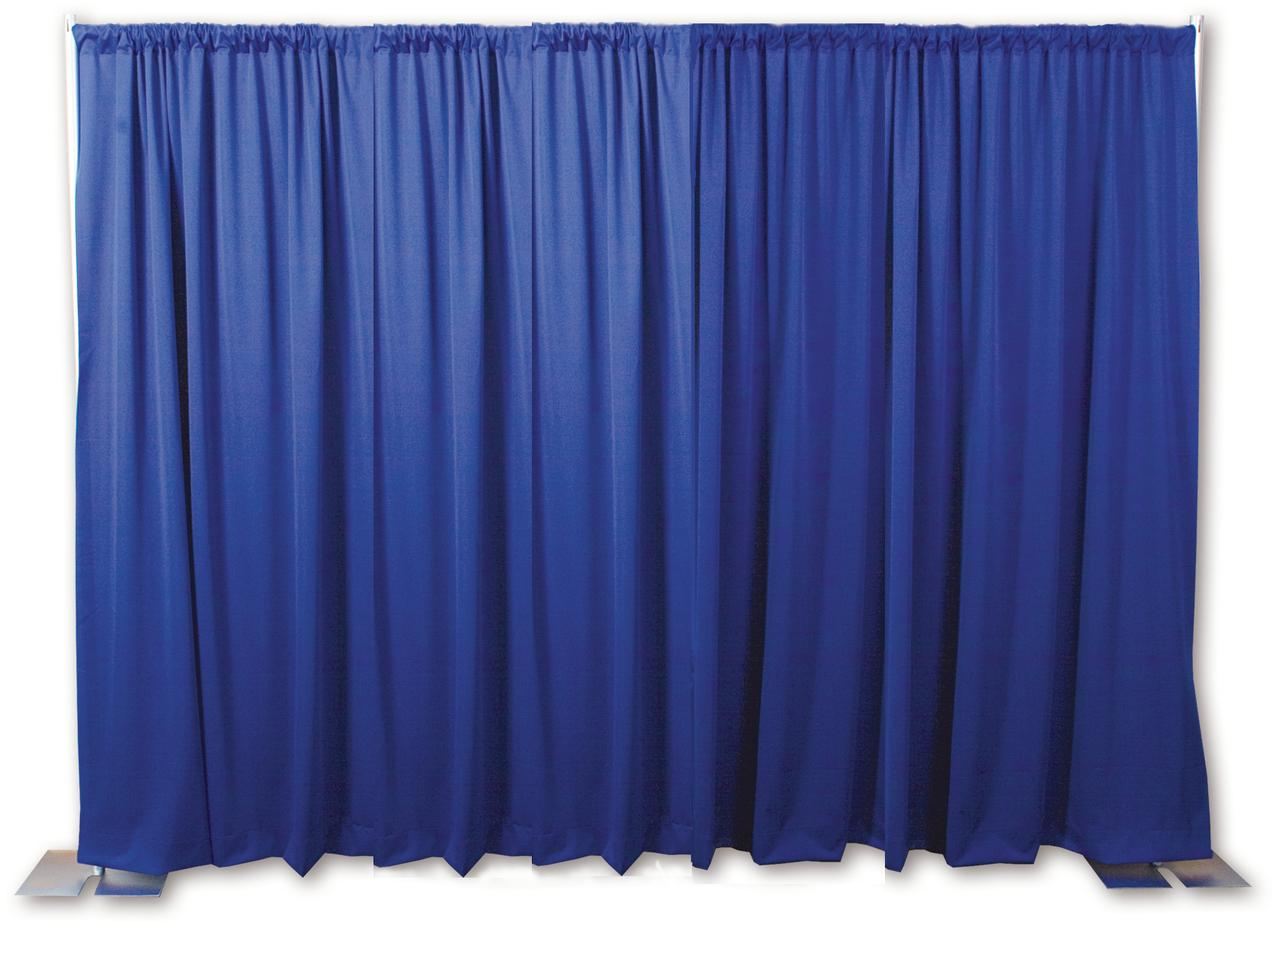 Premier Portable Pipe and Drape Backdrop Kit 8ft x 10ft (Royal Blue Drapes) by OnlineEEI